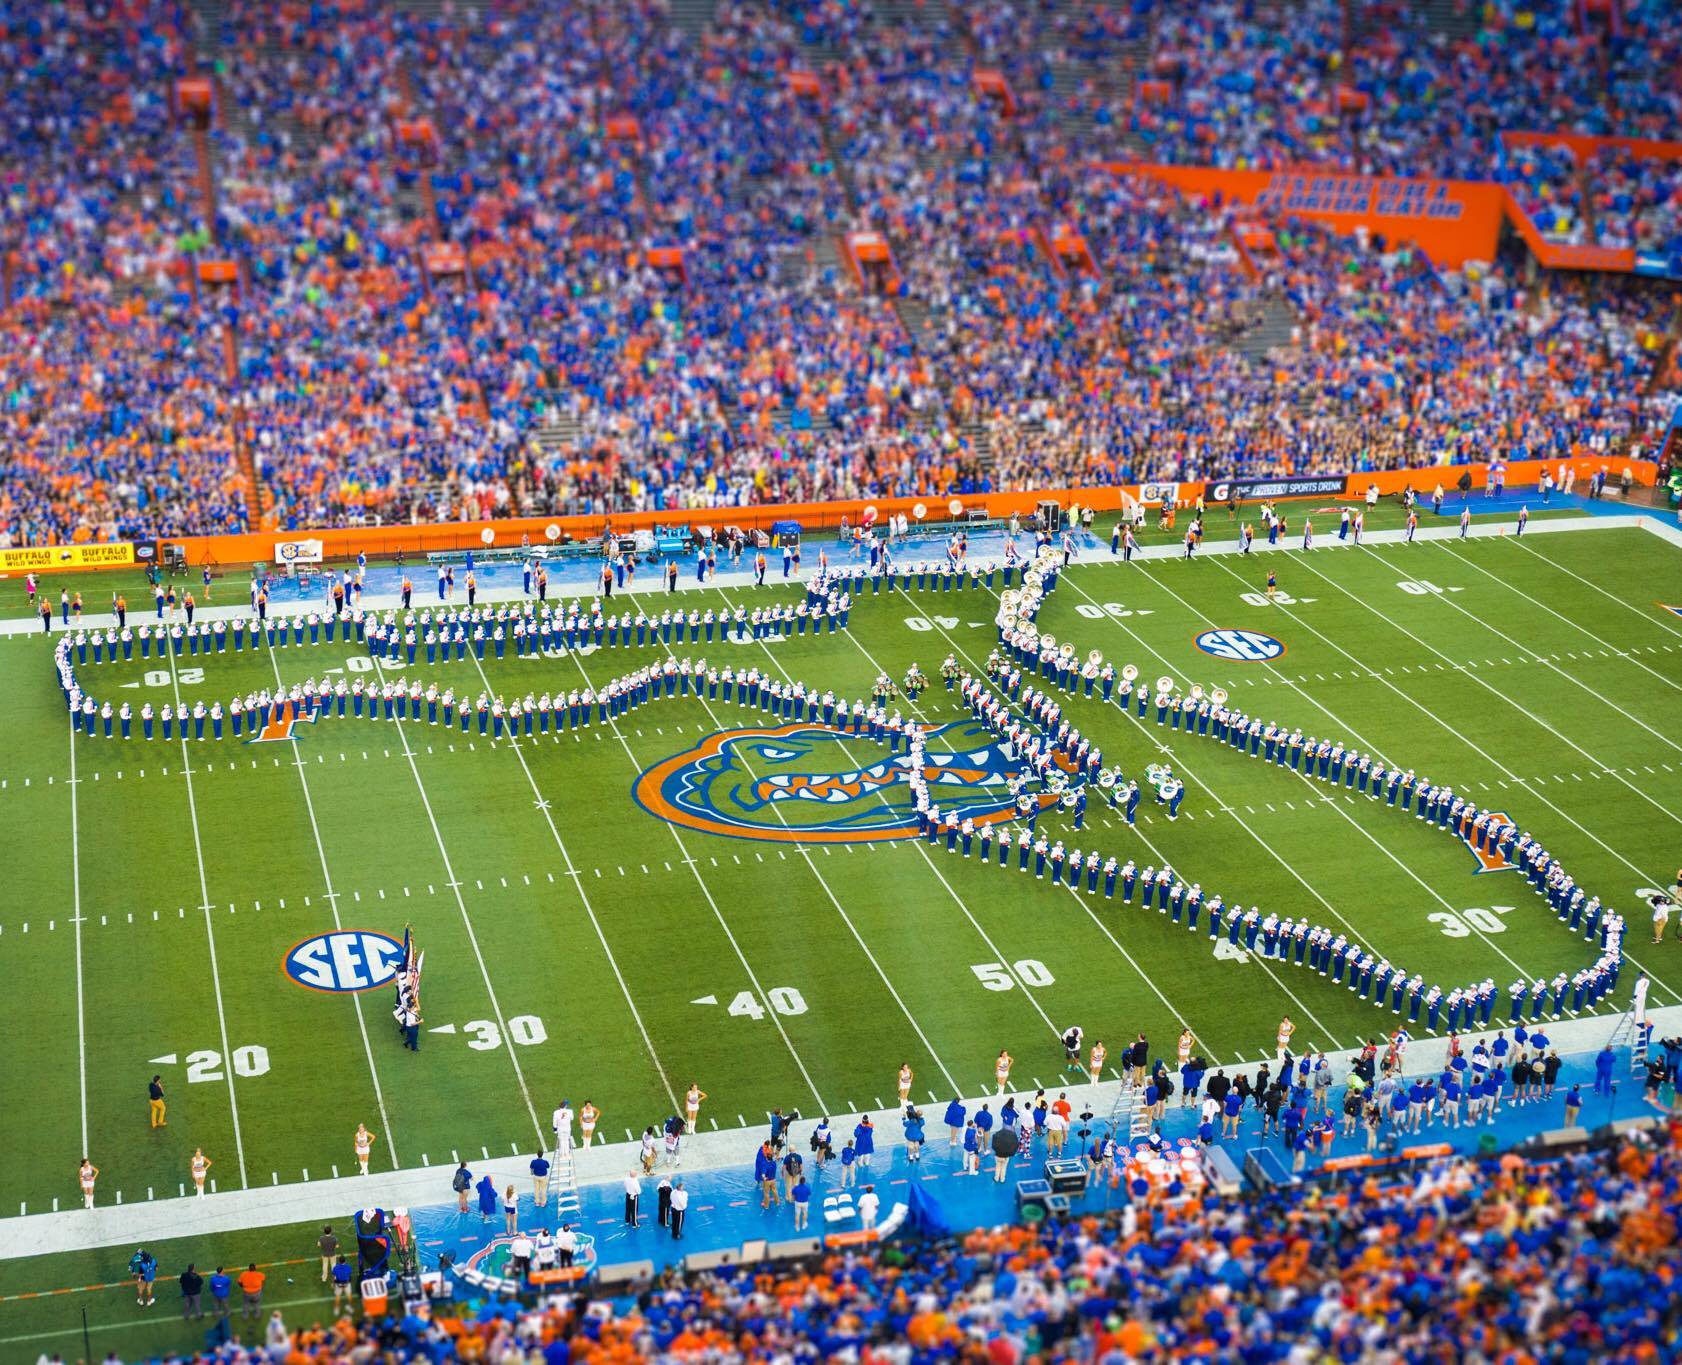 Florida Gators football game attendance